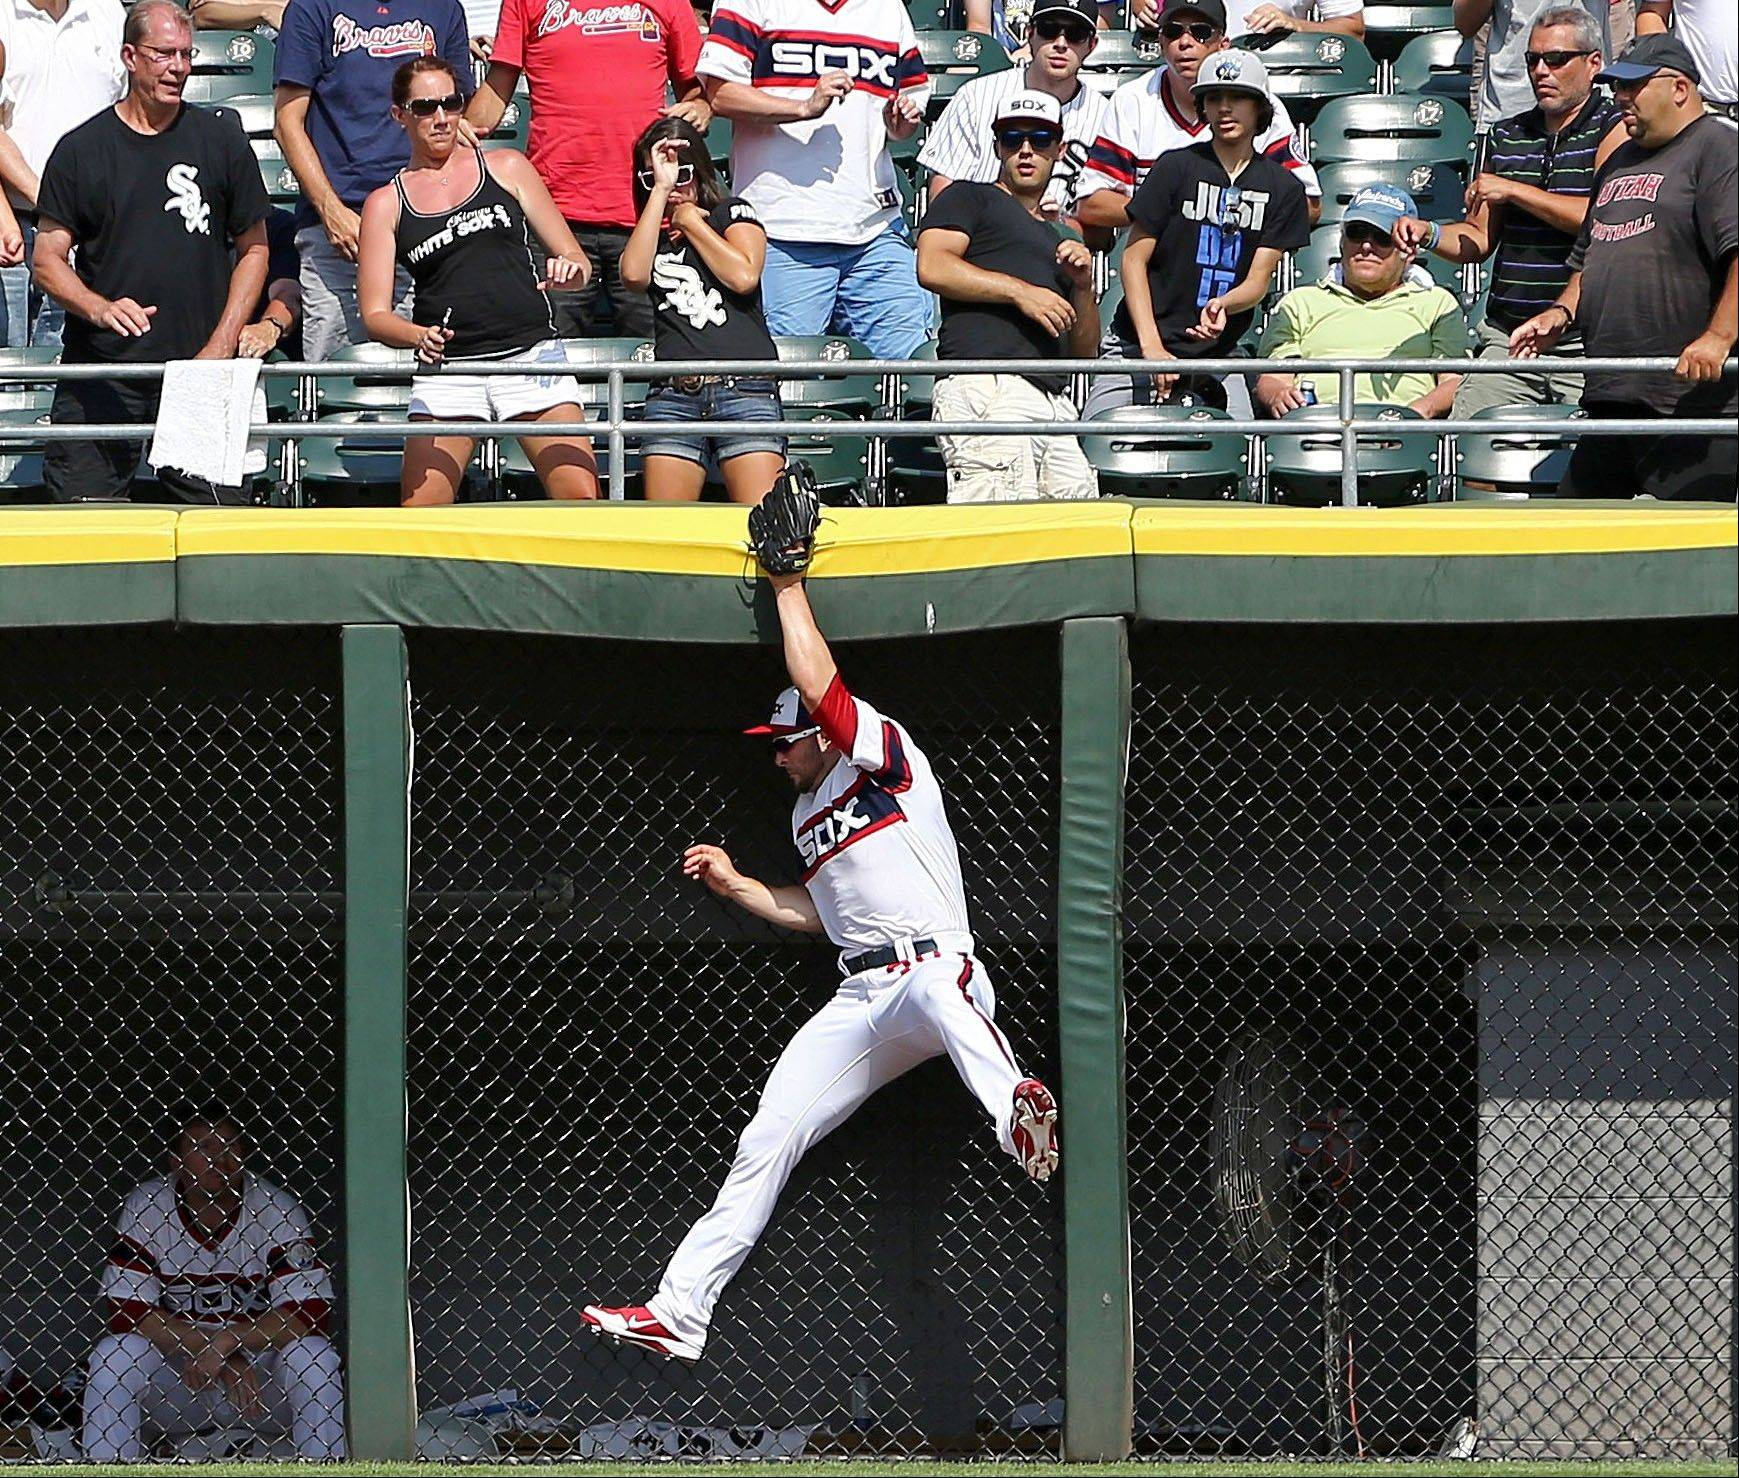 White Sox left fielder Casper Wells robs Atlanta Braves' Reed Johnson of a home run in the eighth inning as the White Sox defeated the Braves 3-1 in a baseball game in Chicago, Sunday, July 21, 2013.